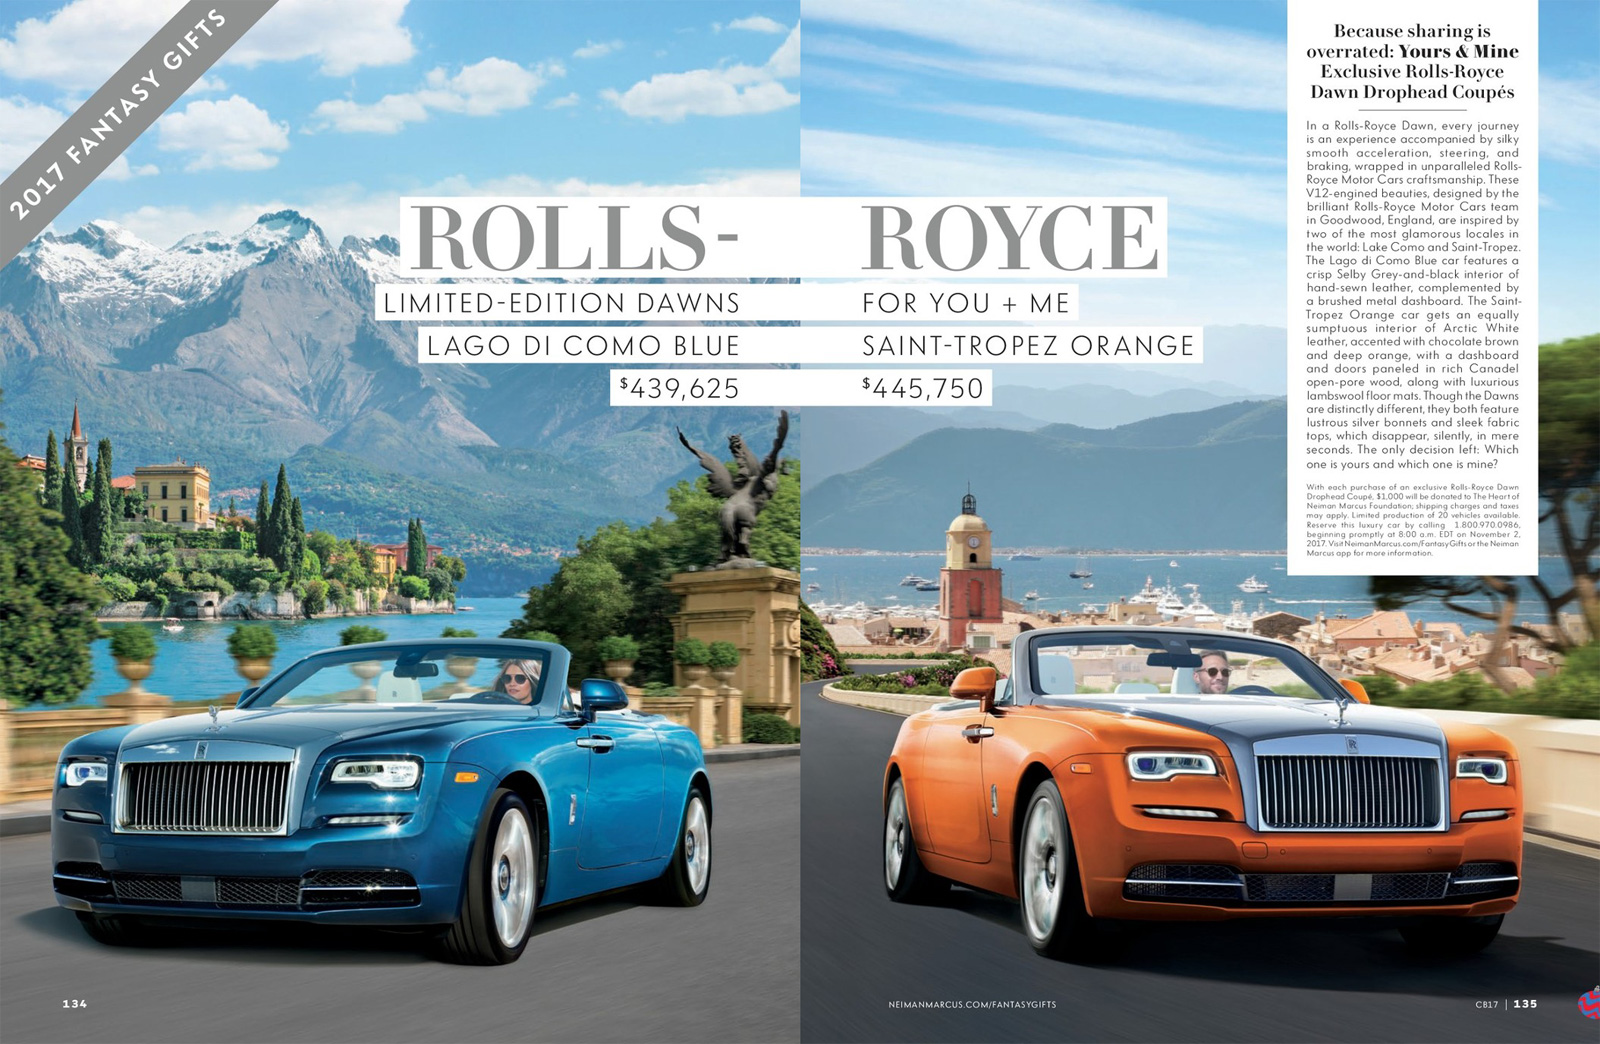 Yours and Mine Rolls-Royce Dawns Land in Neiman Marcus Christmas Book